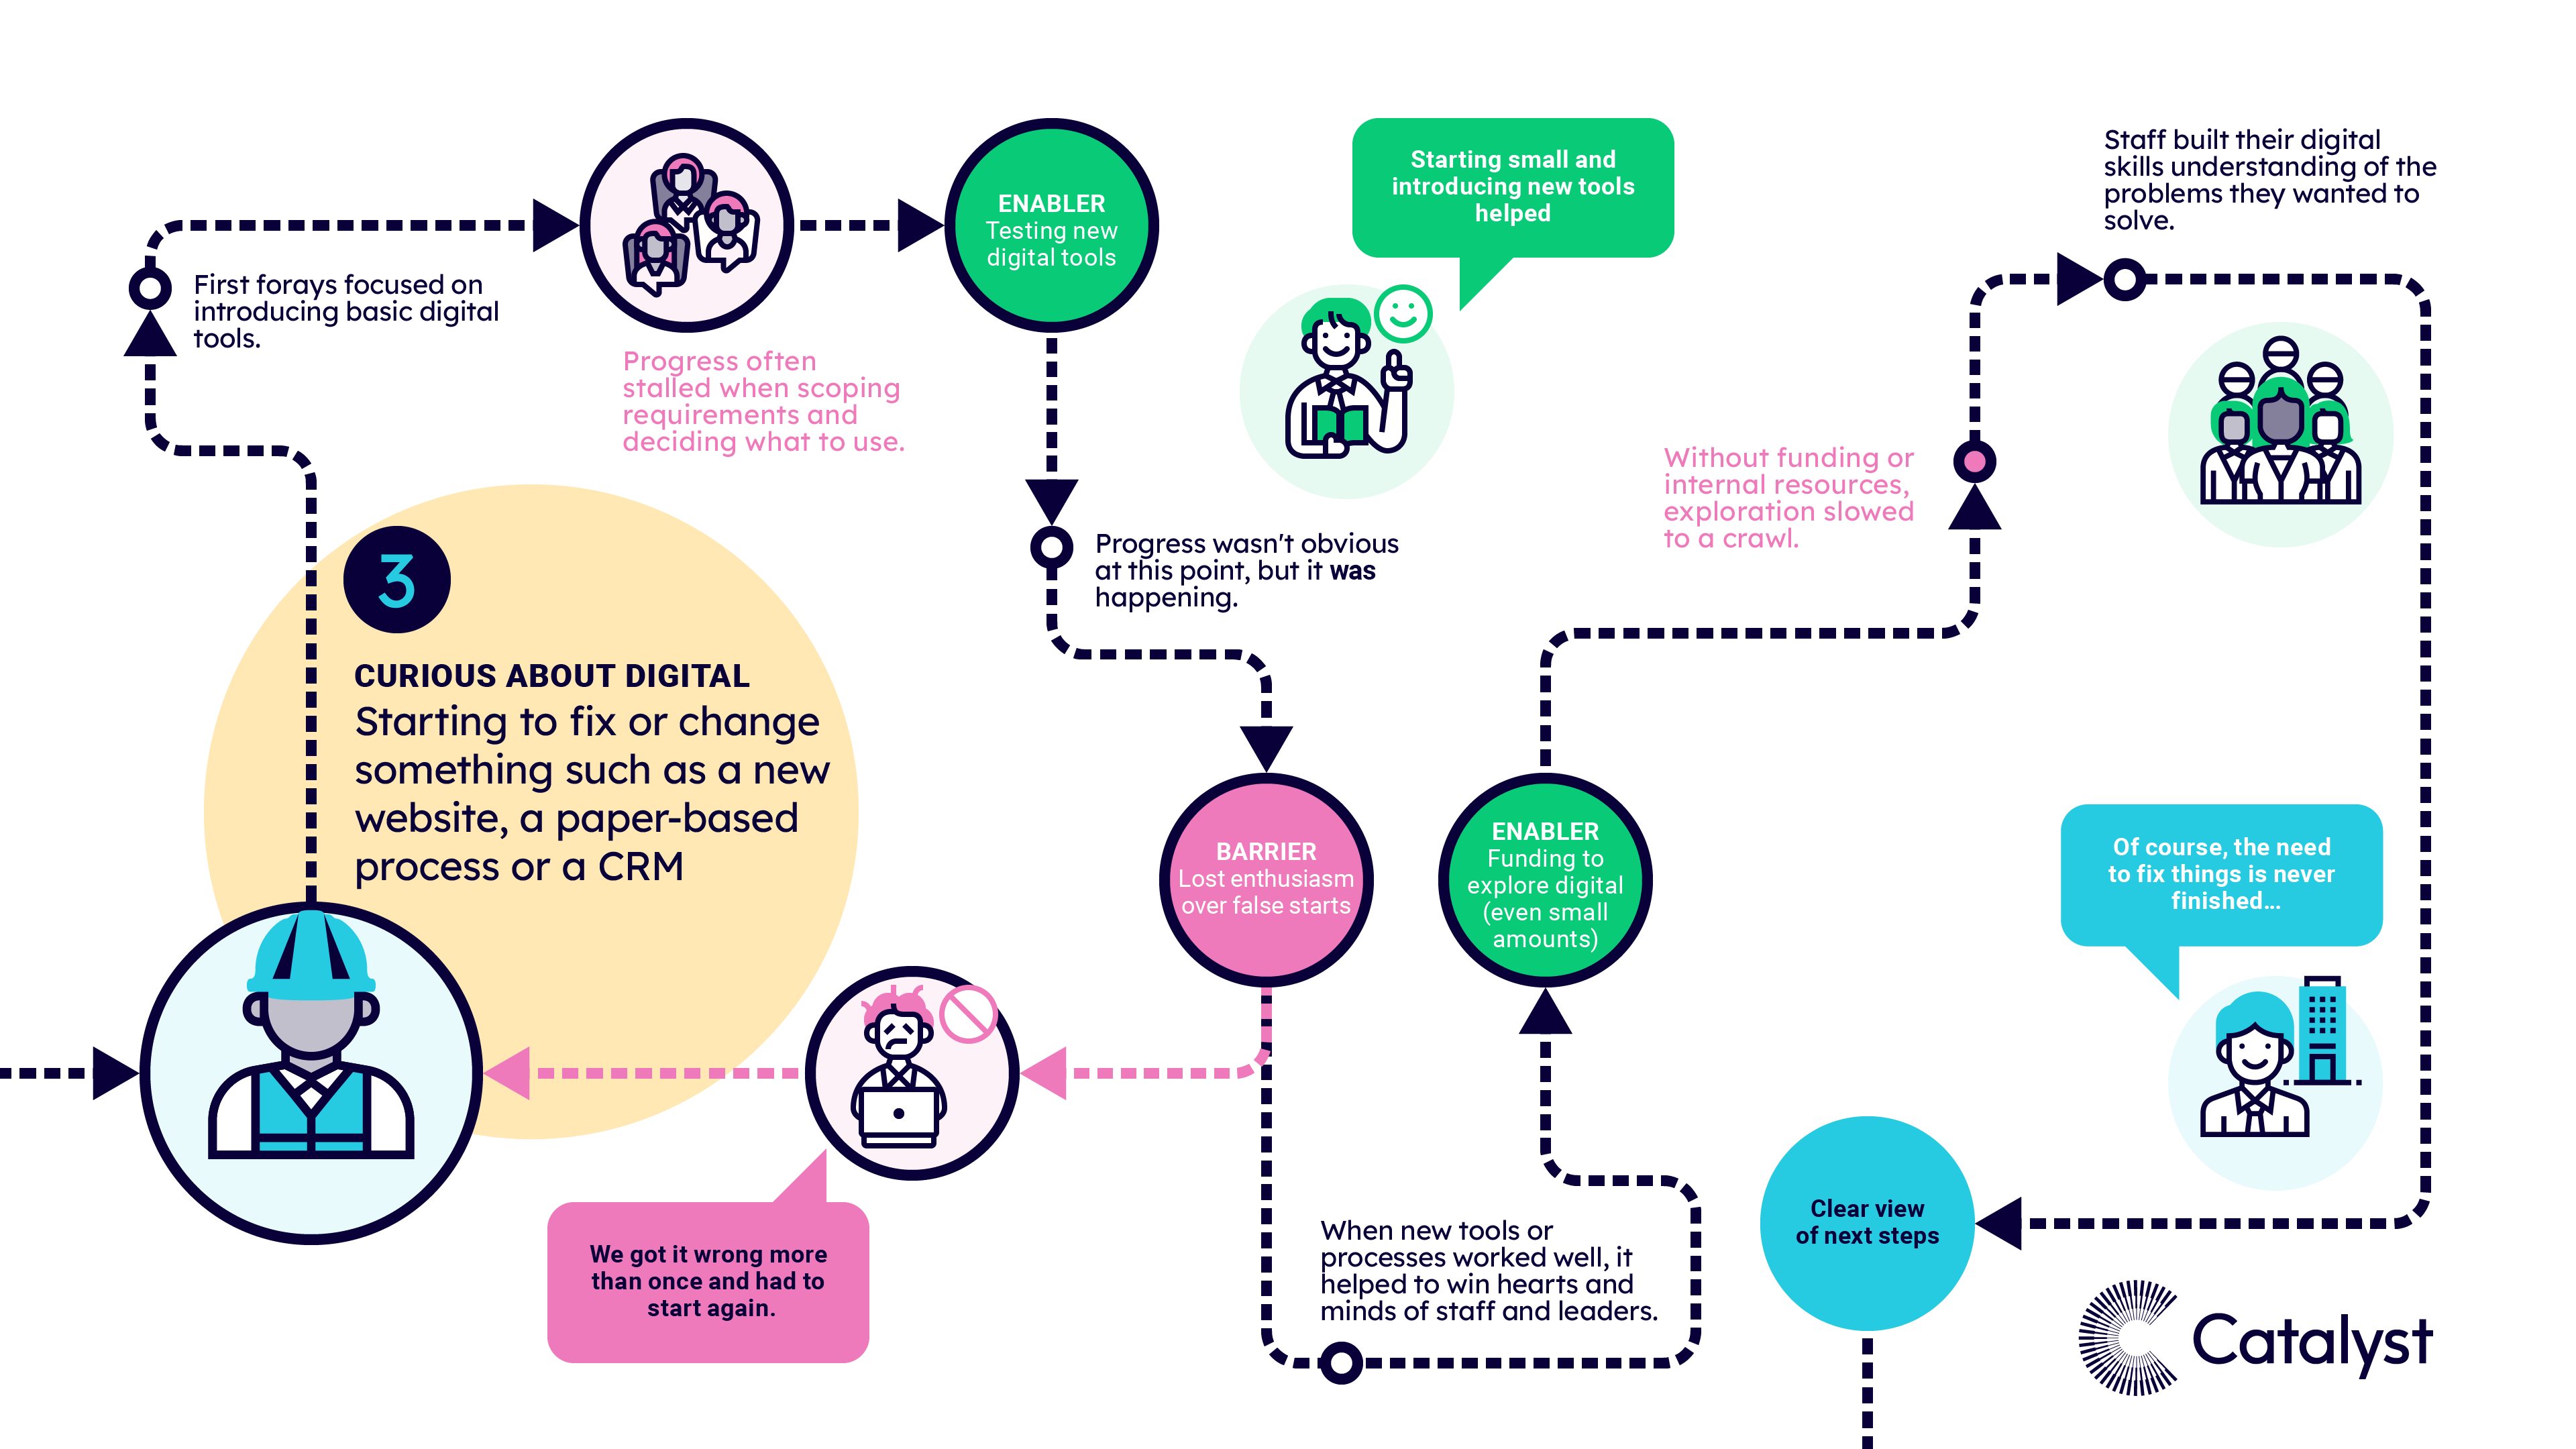 A visual map of pattern 3, when charities were at the curious stage and they started to fix or change something. The text highlights the most common experiences, risk factors, barriers and enablers at this stage of the journey.